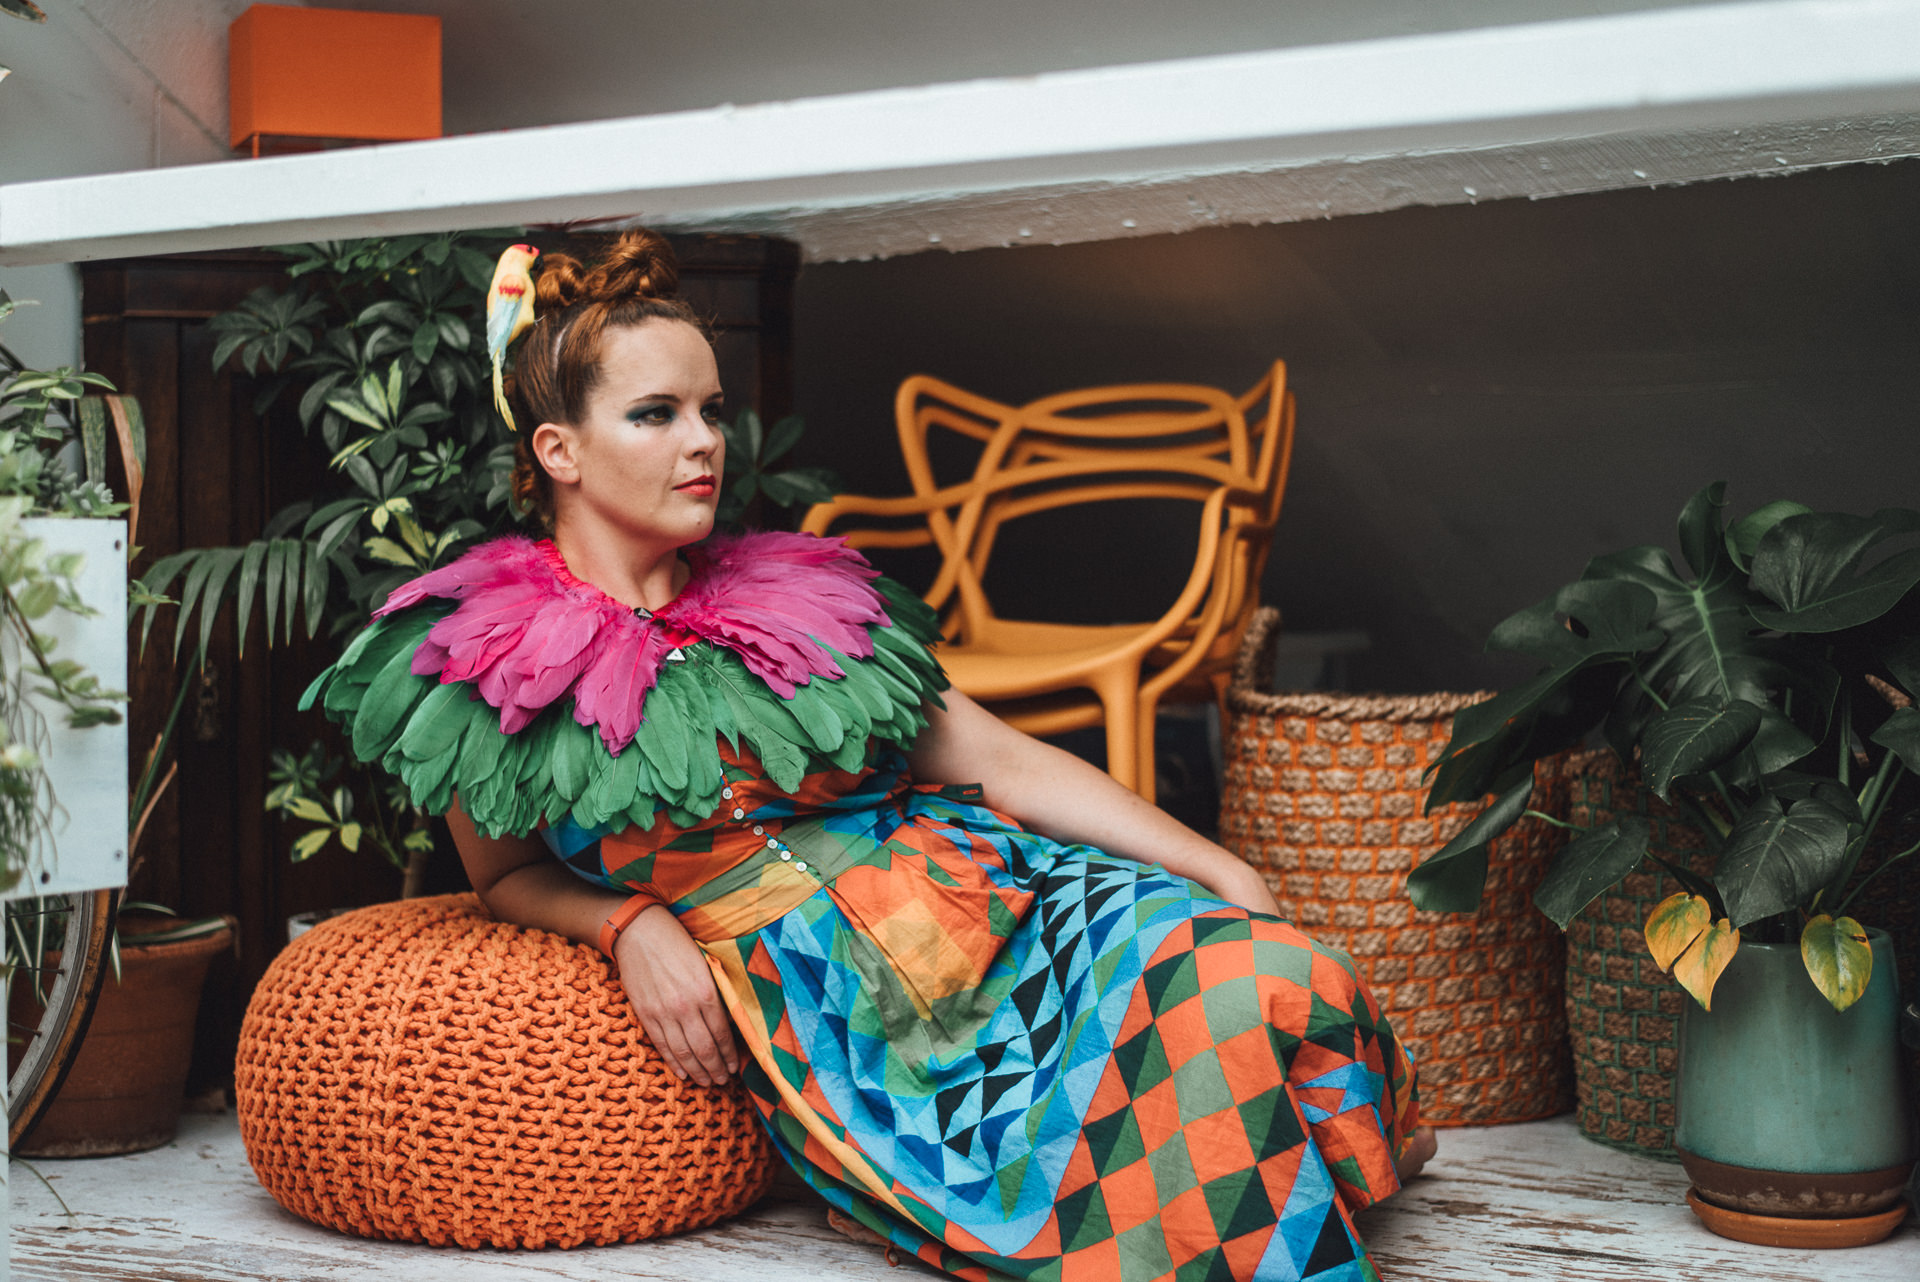 Colourfully dressed woman with parrot in her hair. Quirky london branding shoot